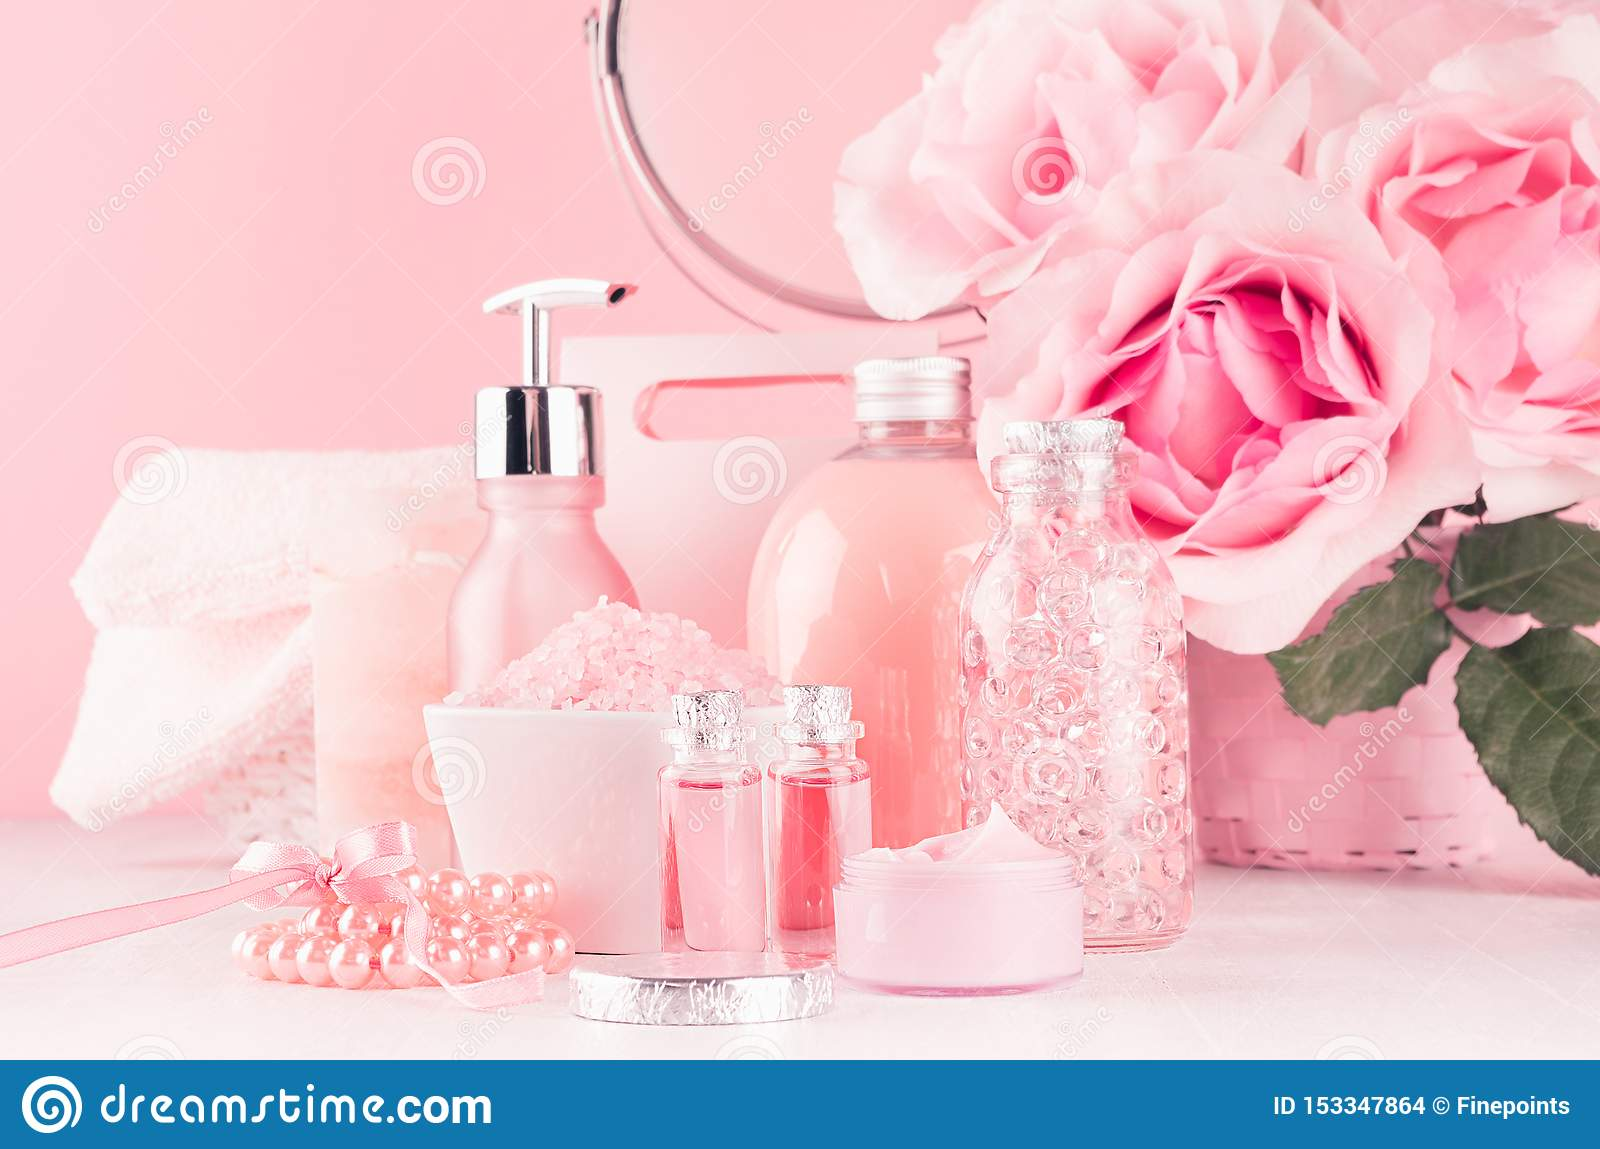 Romantic Bathroom Interior In Pastel Pink Silver Color Flowers Round Mirror Bath Accessories Cosmetic Products Cream Salt Stock Photo Image Of Delicate Light 153347864